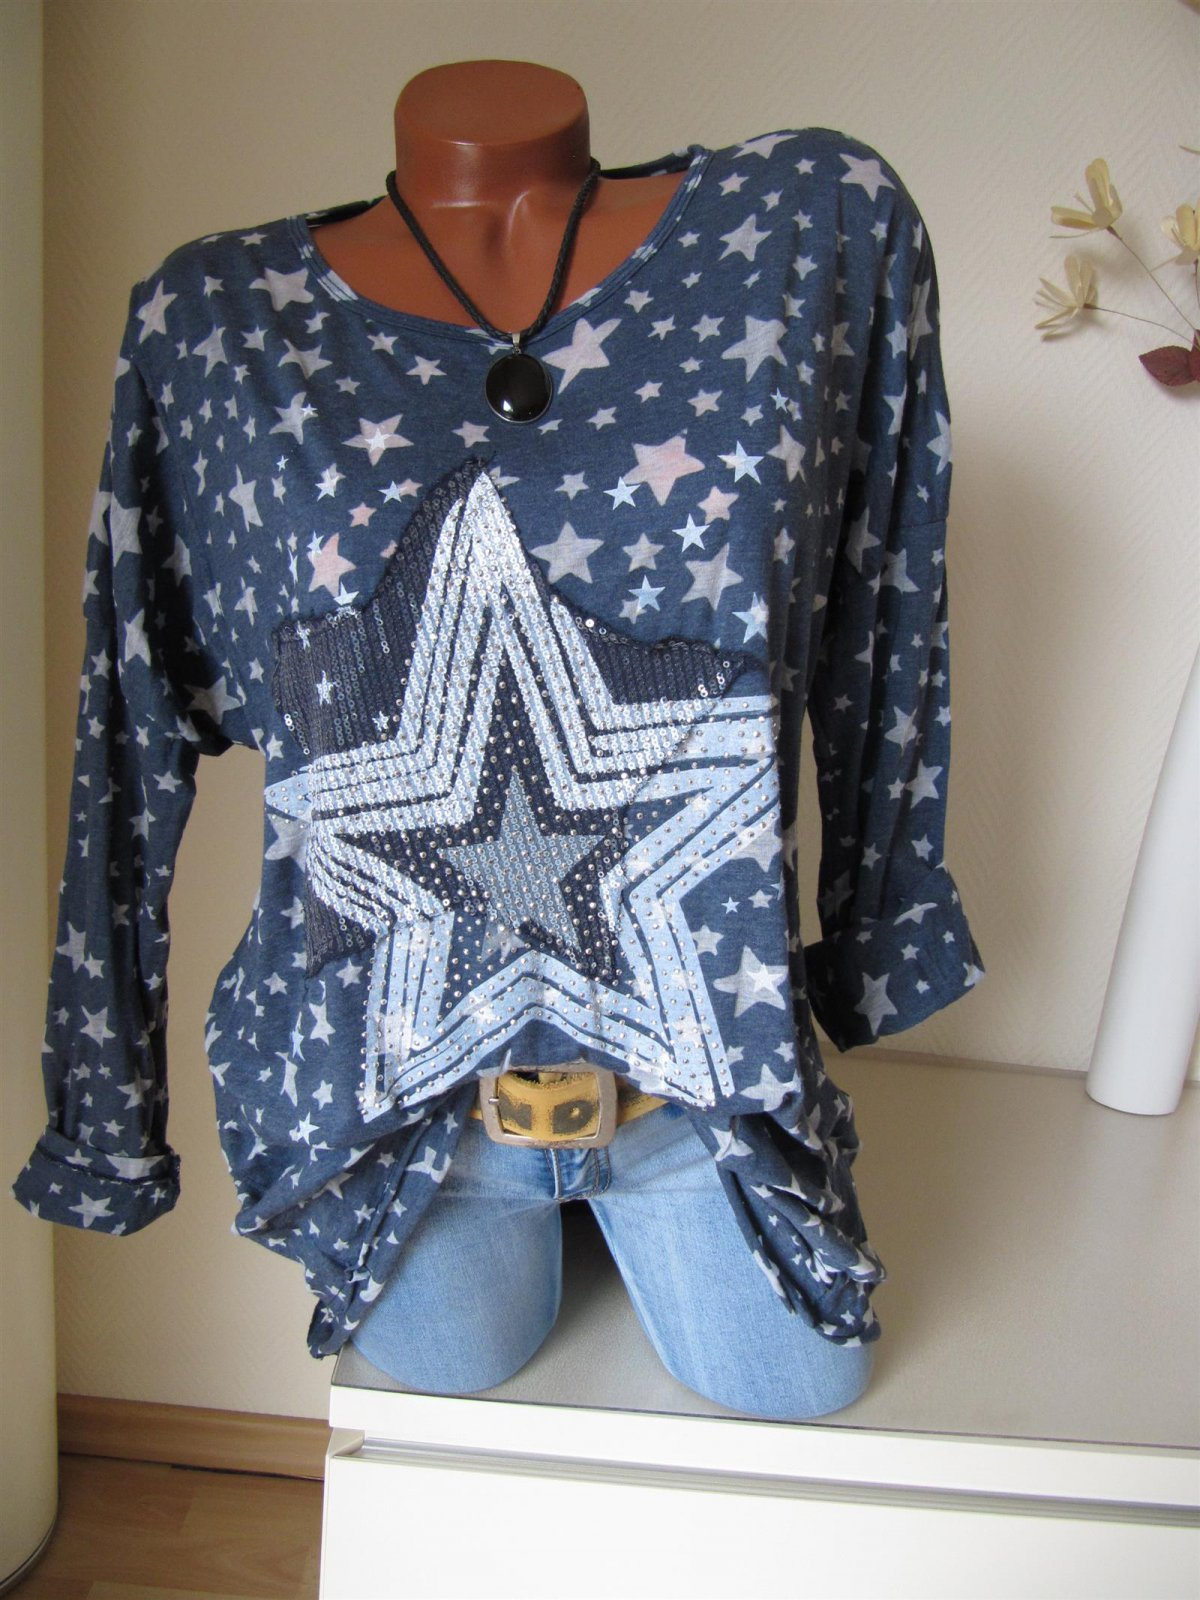 separation shoes e3703 07168 Oversize Long Tunika Shirt Sterne Glitzer Nieten Pailletten 40 42 44